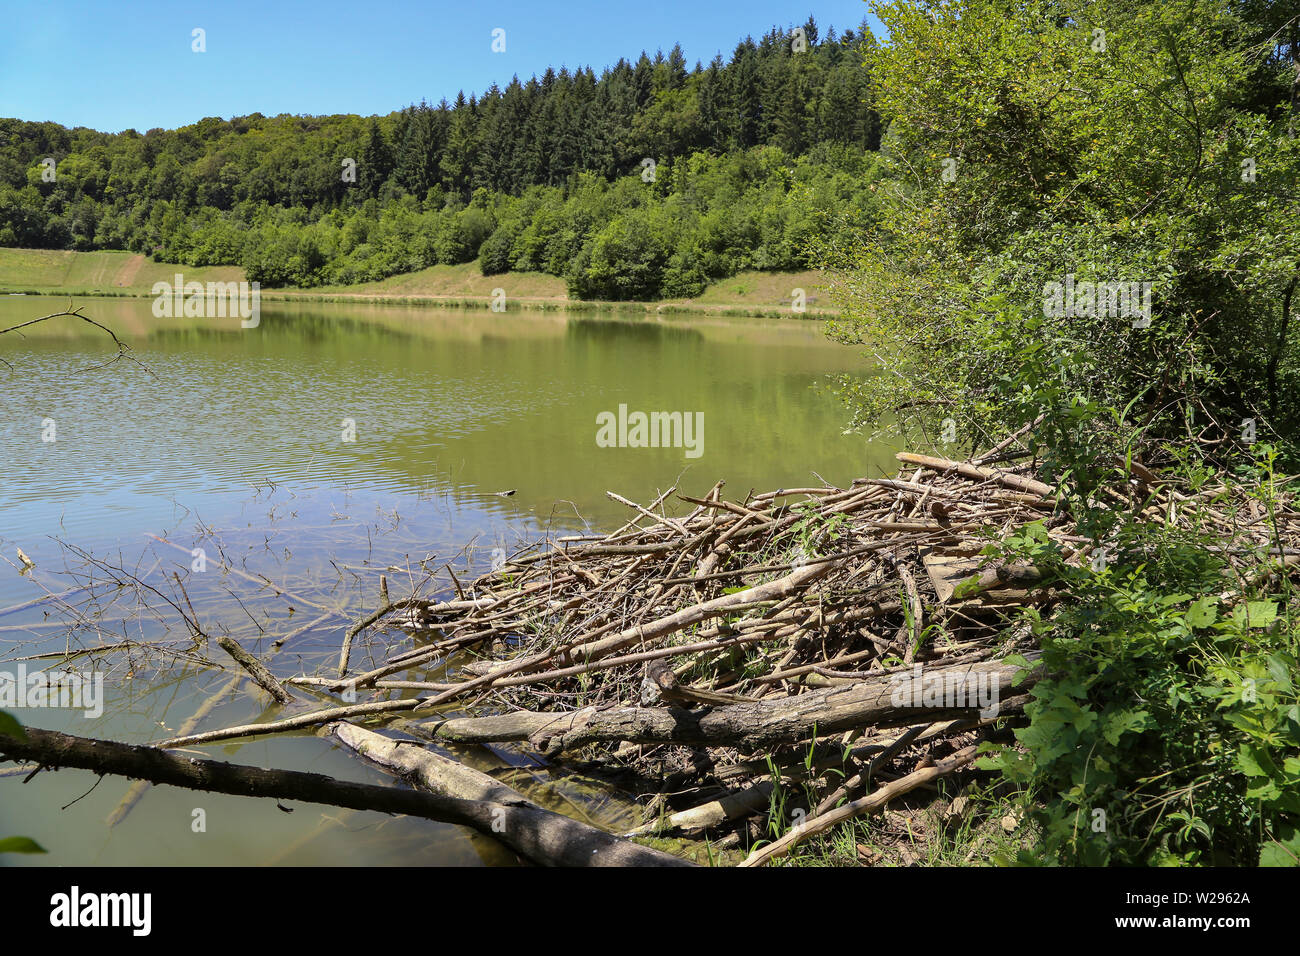 Beavers dwelling on a forest lake - Stock Image